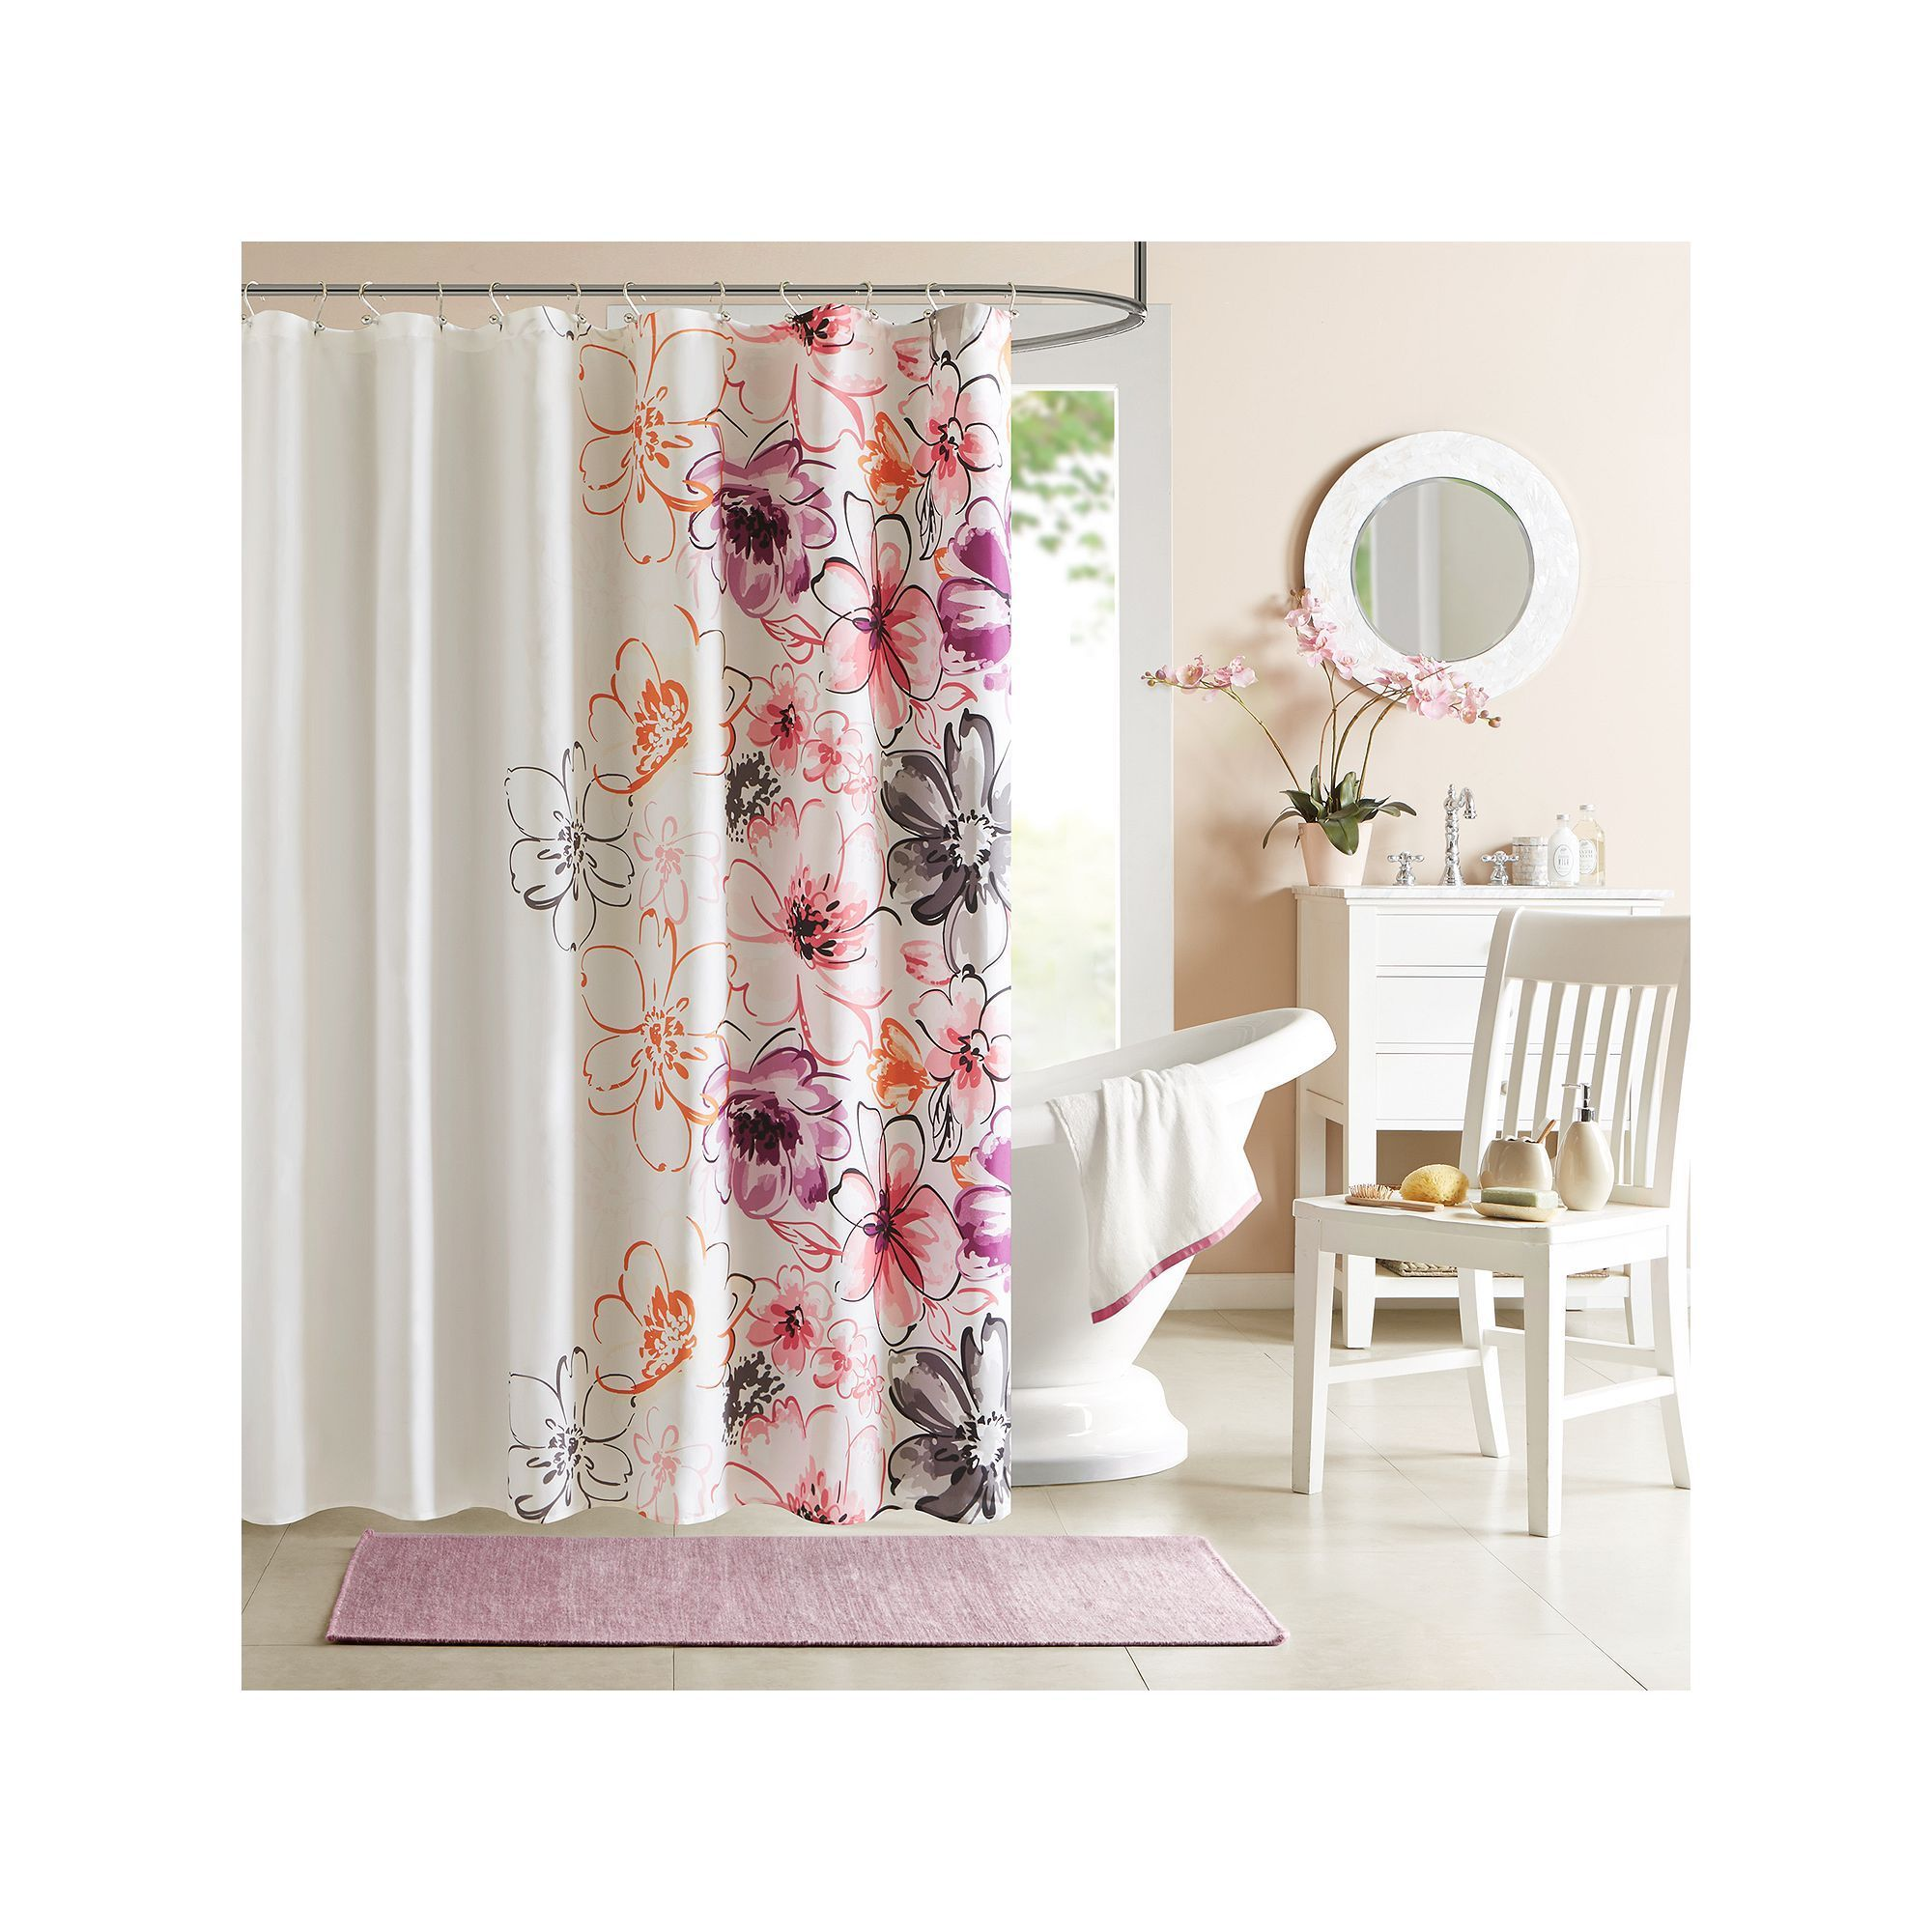 Intelligent Design Floral Shower Curtain, Pink